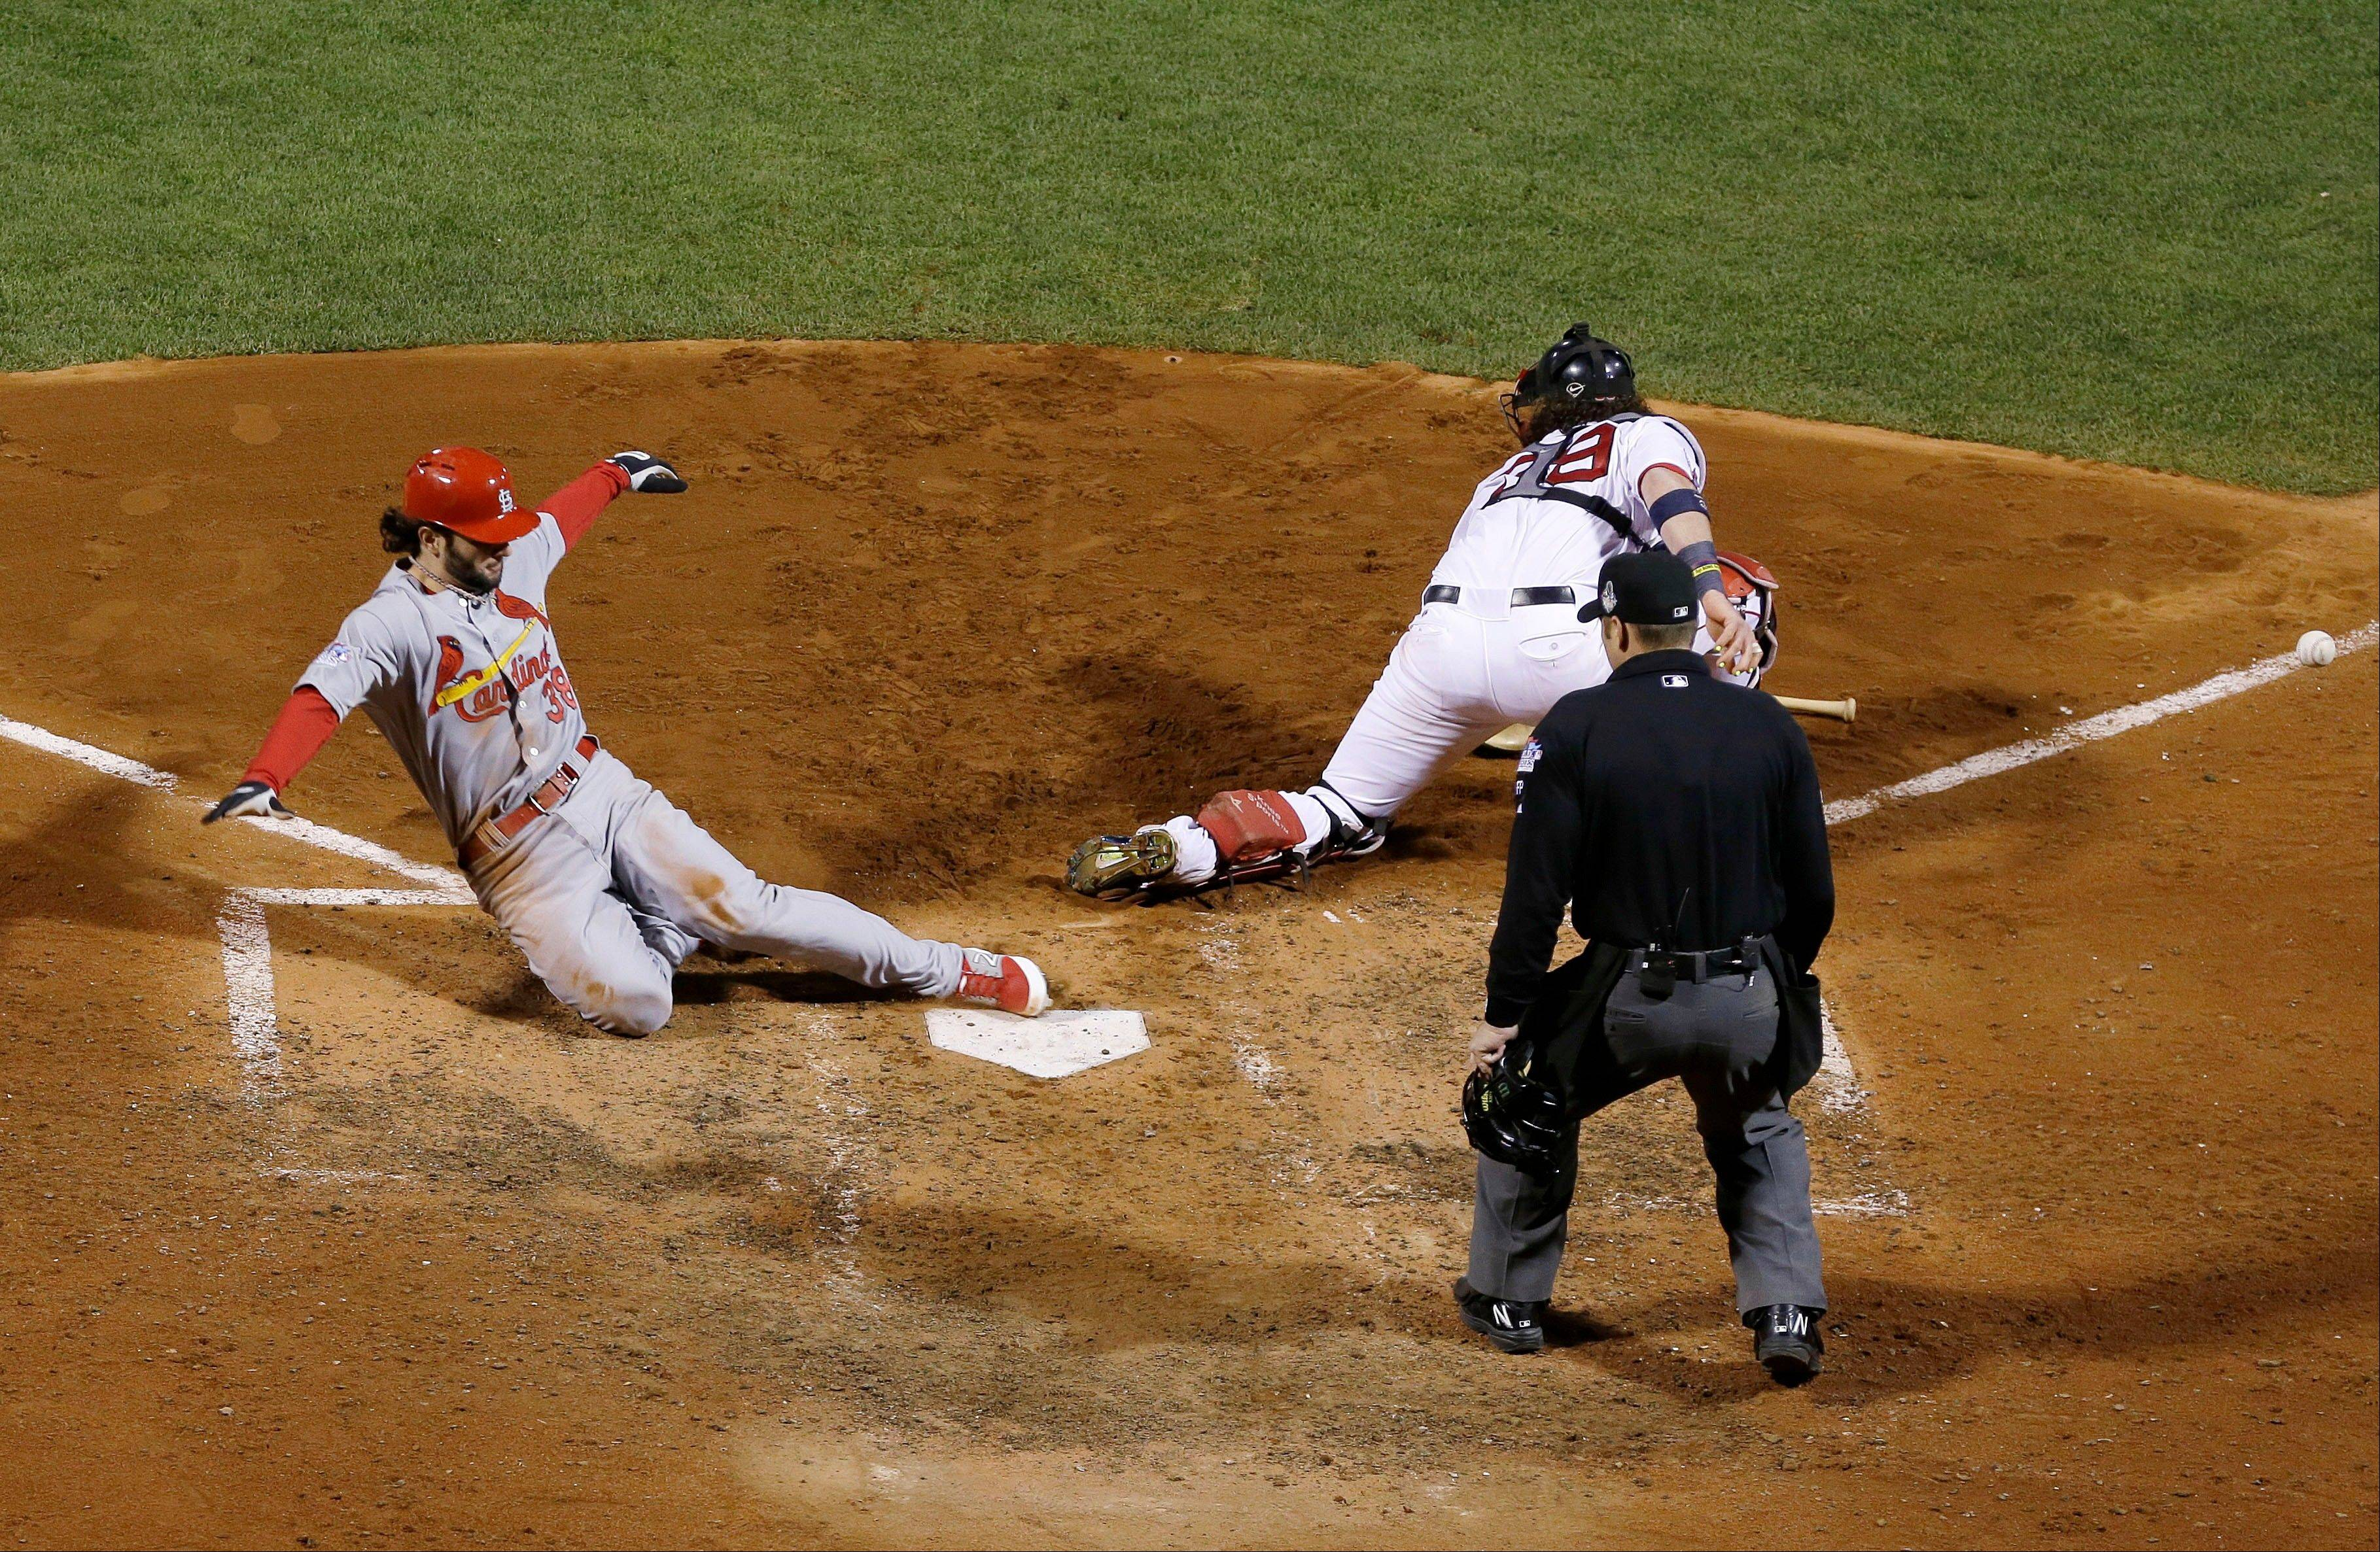 The Cardinals' Pete Kozma scores on a sacrifice fly as Red Sox catcher Jarrod Saltalamacchia has trouble with the throw during the seventh inning.